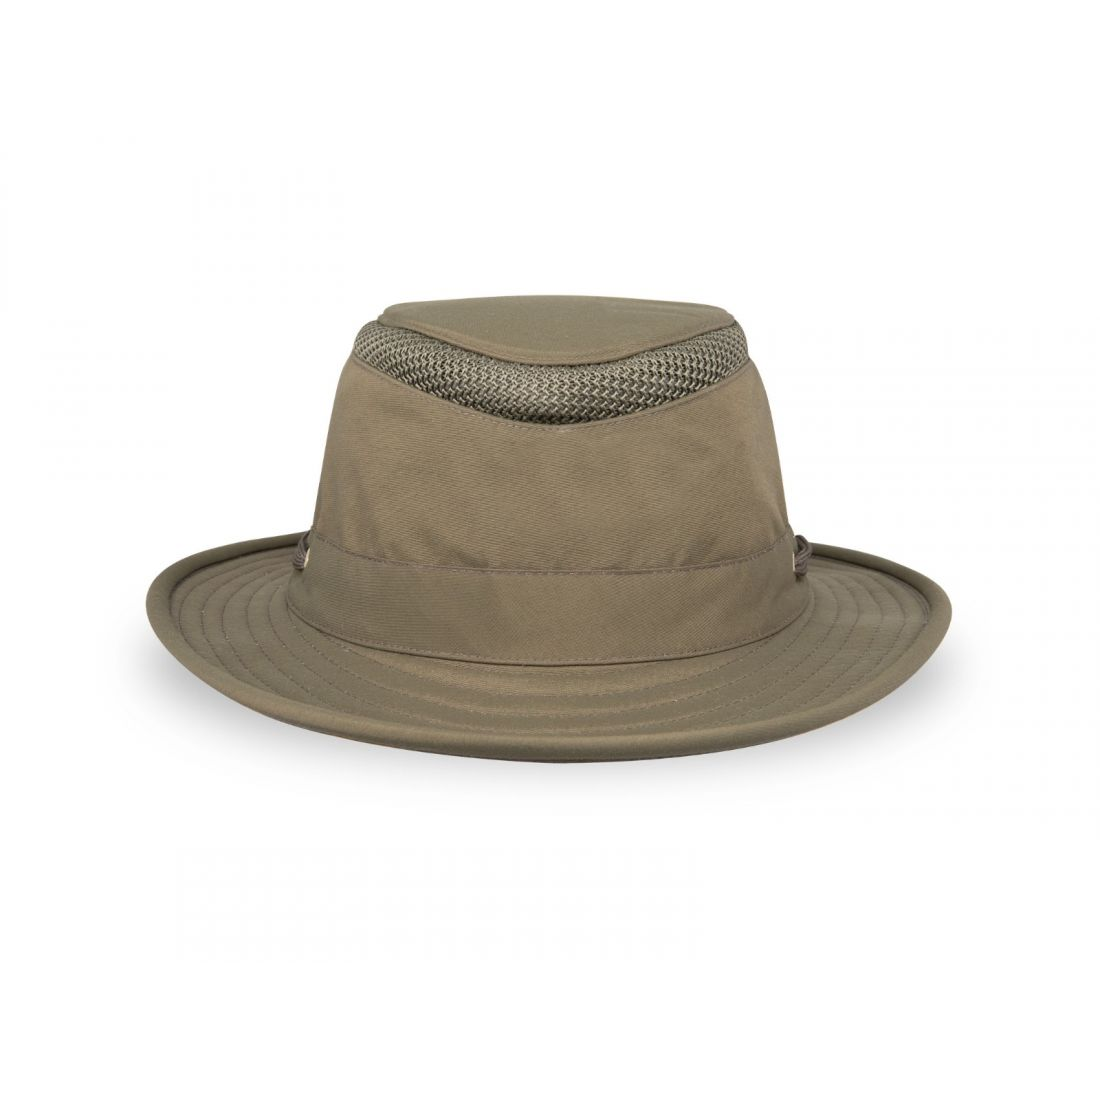 hat with brim